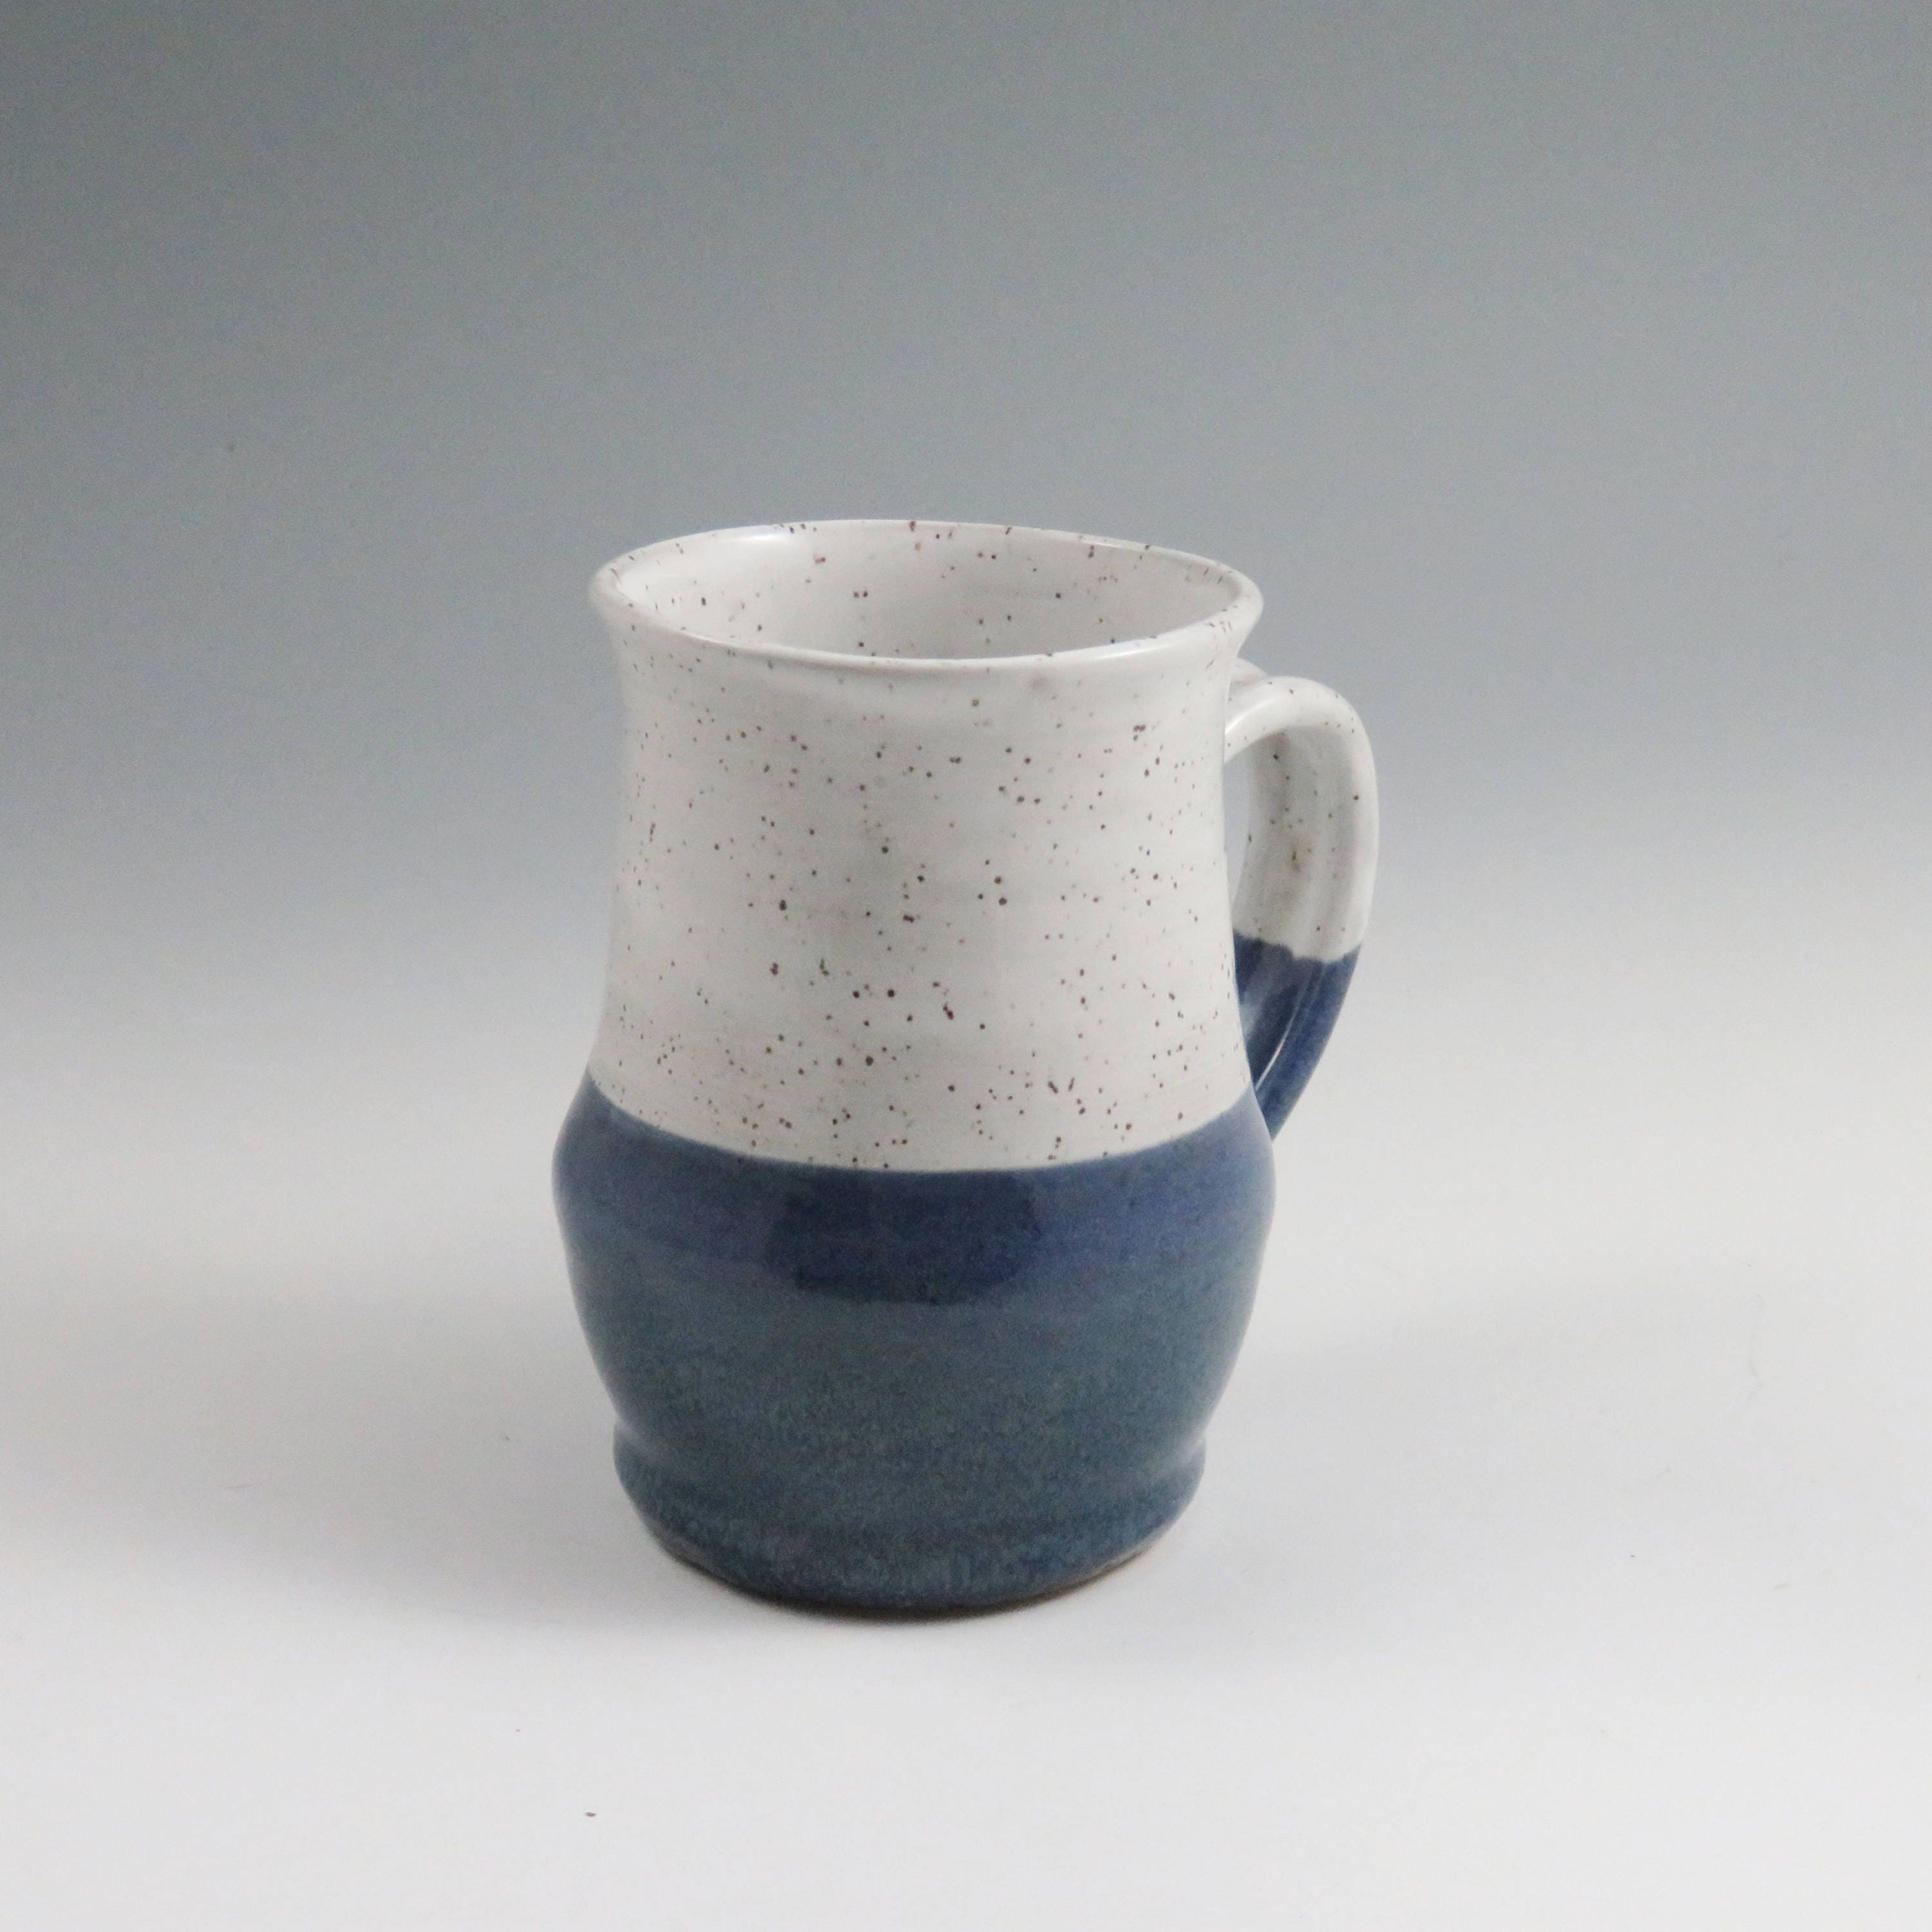 Blue Handmade Ceramic Pottery Mug 12 Oz Coffee Mug Unusual Mug Unique Pottery Mug Ready To Ship White Ceramic Mug White Pottery Mug Tea Mug